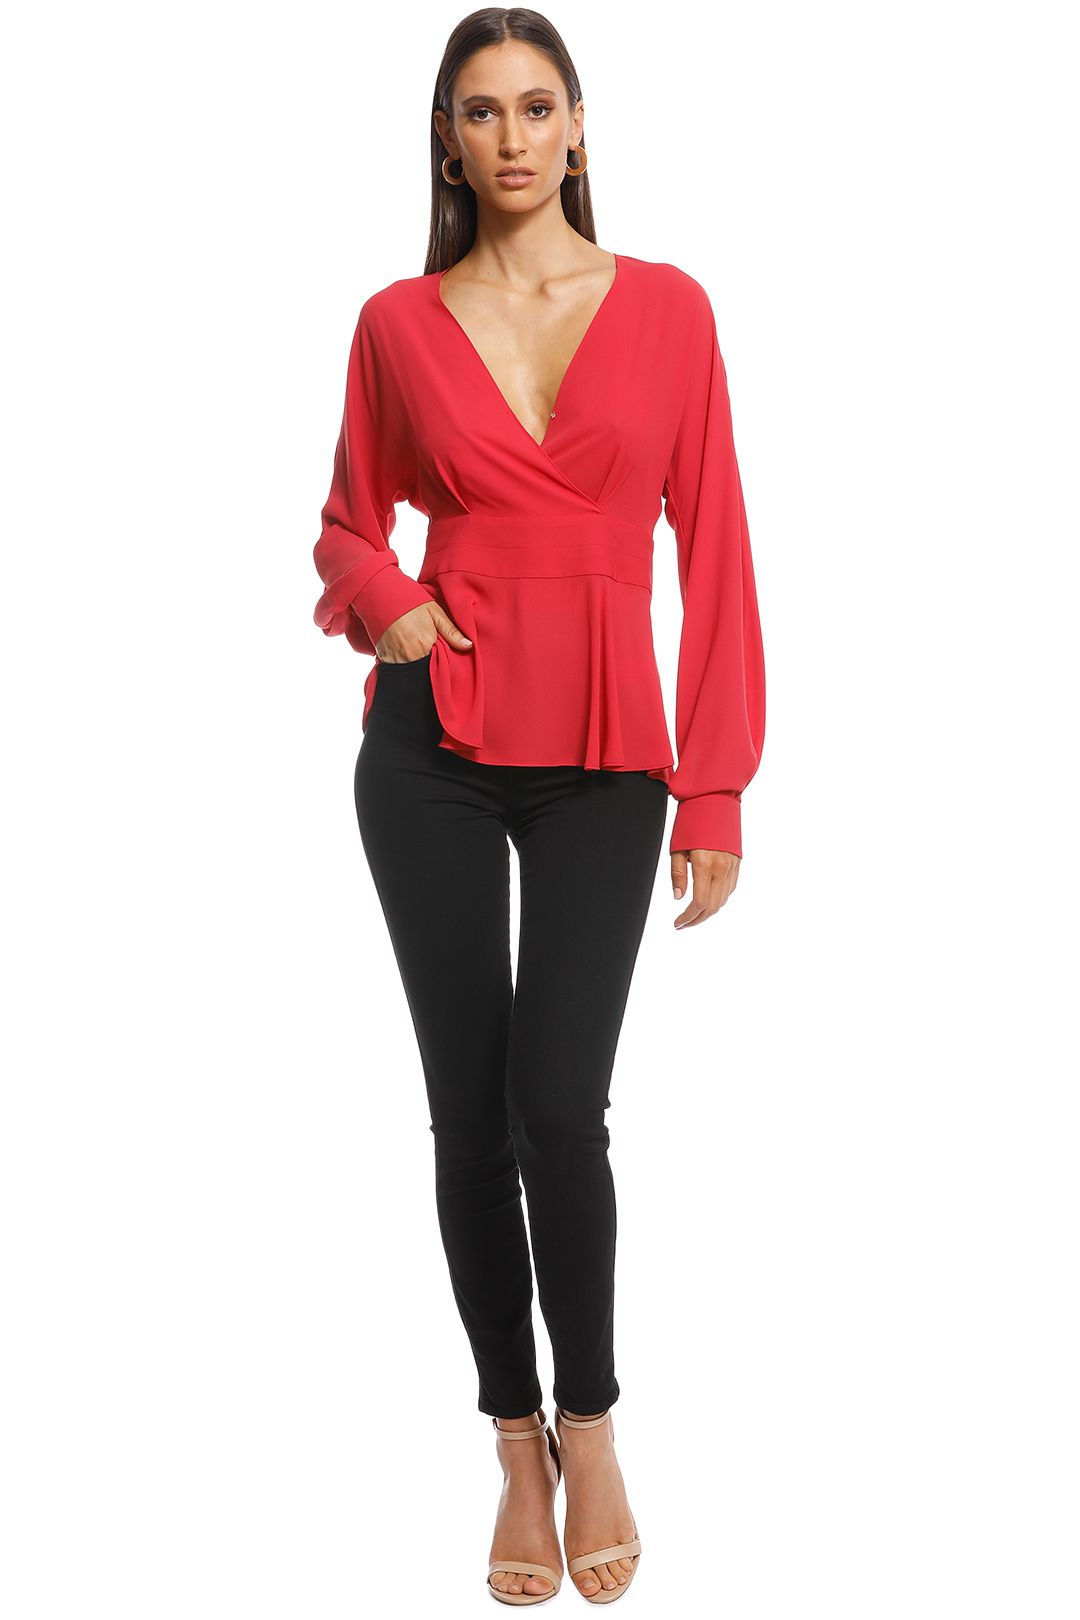 Cue - Georgette Exaggerated Sleeve Peplum Top - Pink - Front